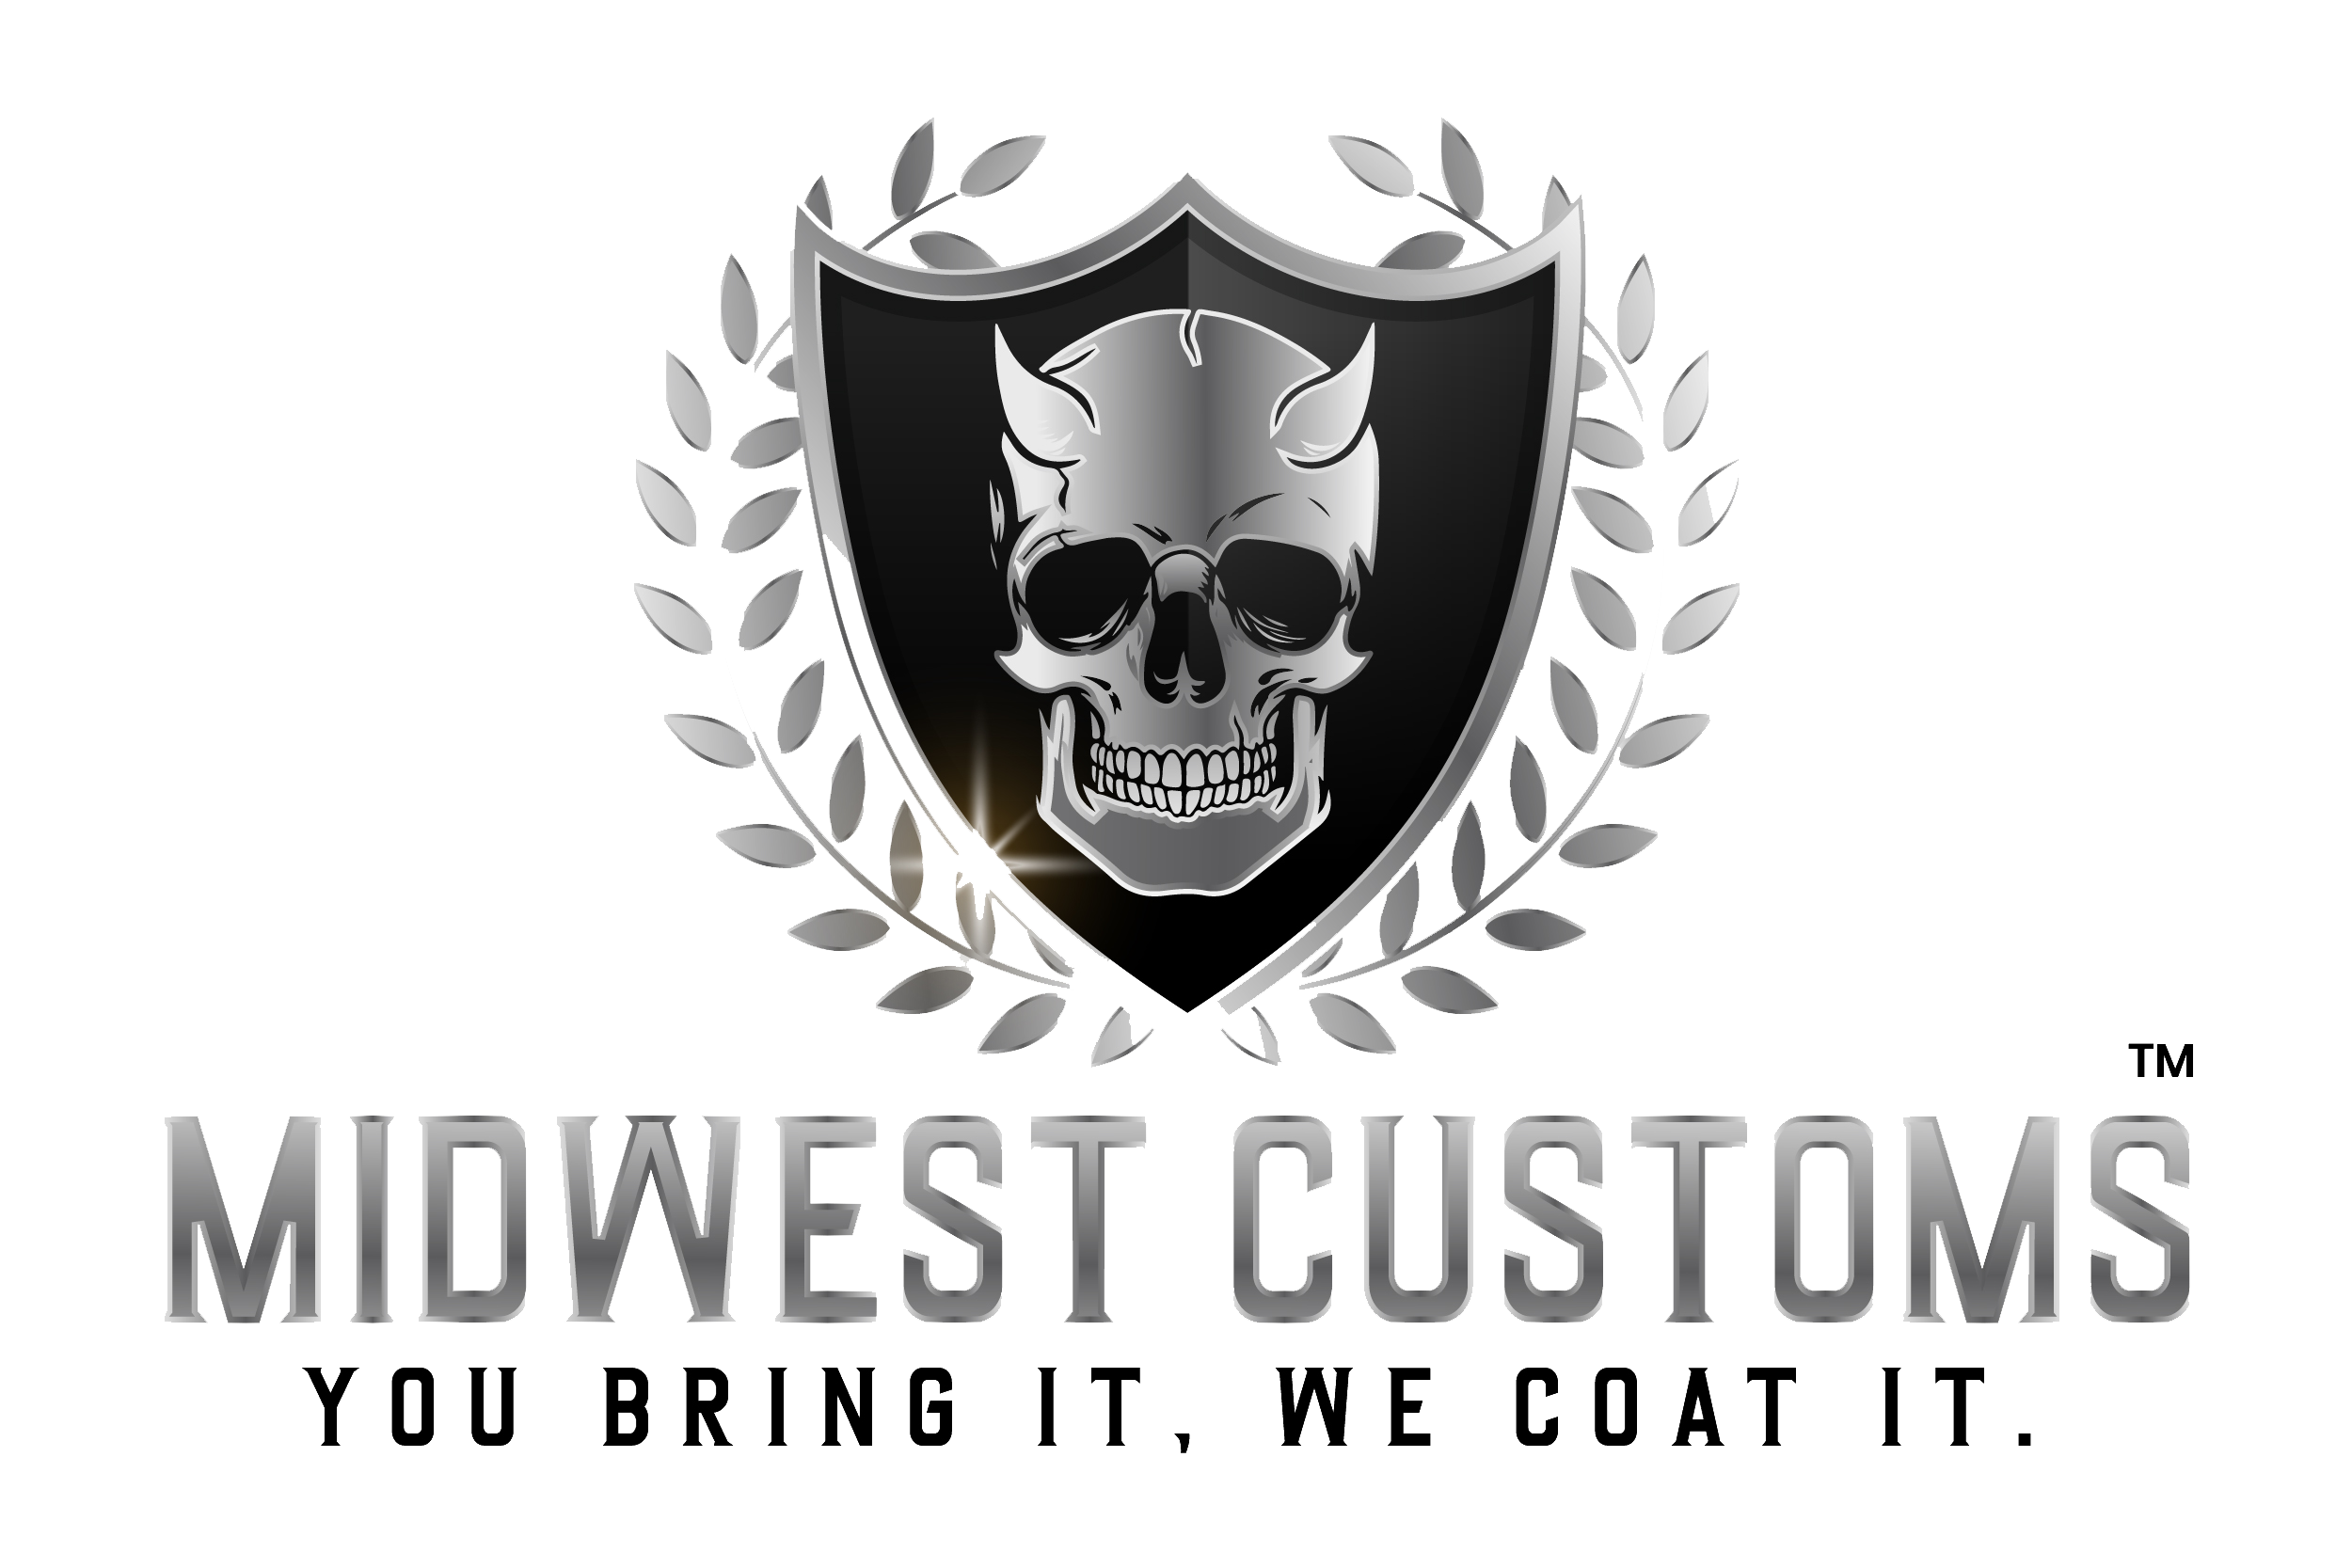 Midwest Customs